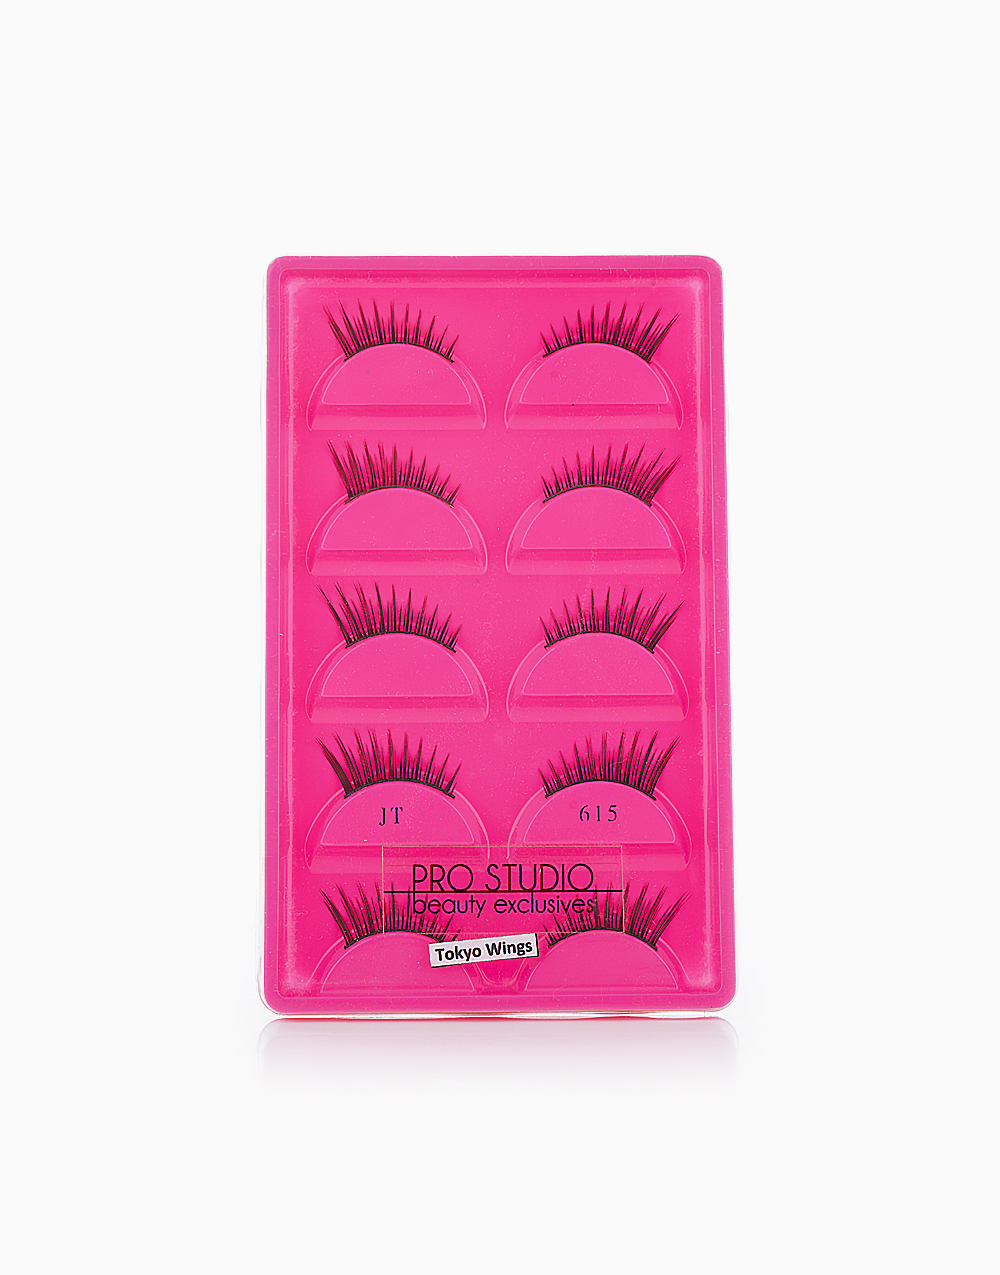 Doll Style Lash Set: Tokyo Wings by PRO STUDIO Beauty Exclusives